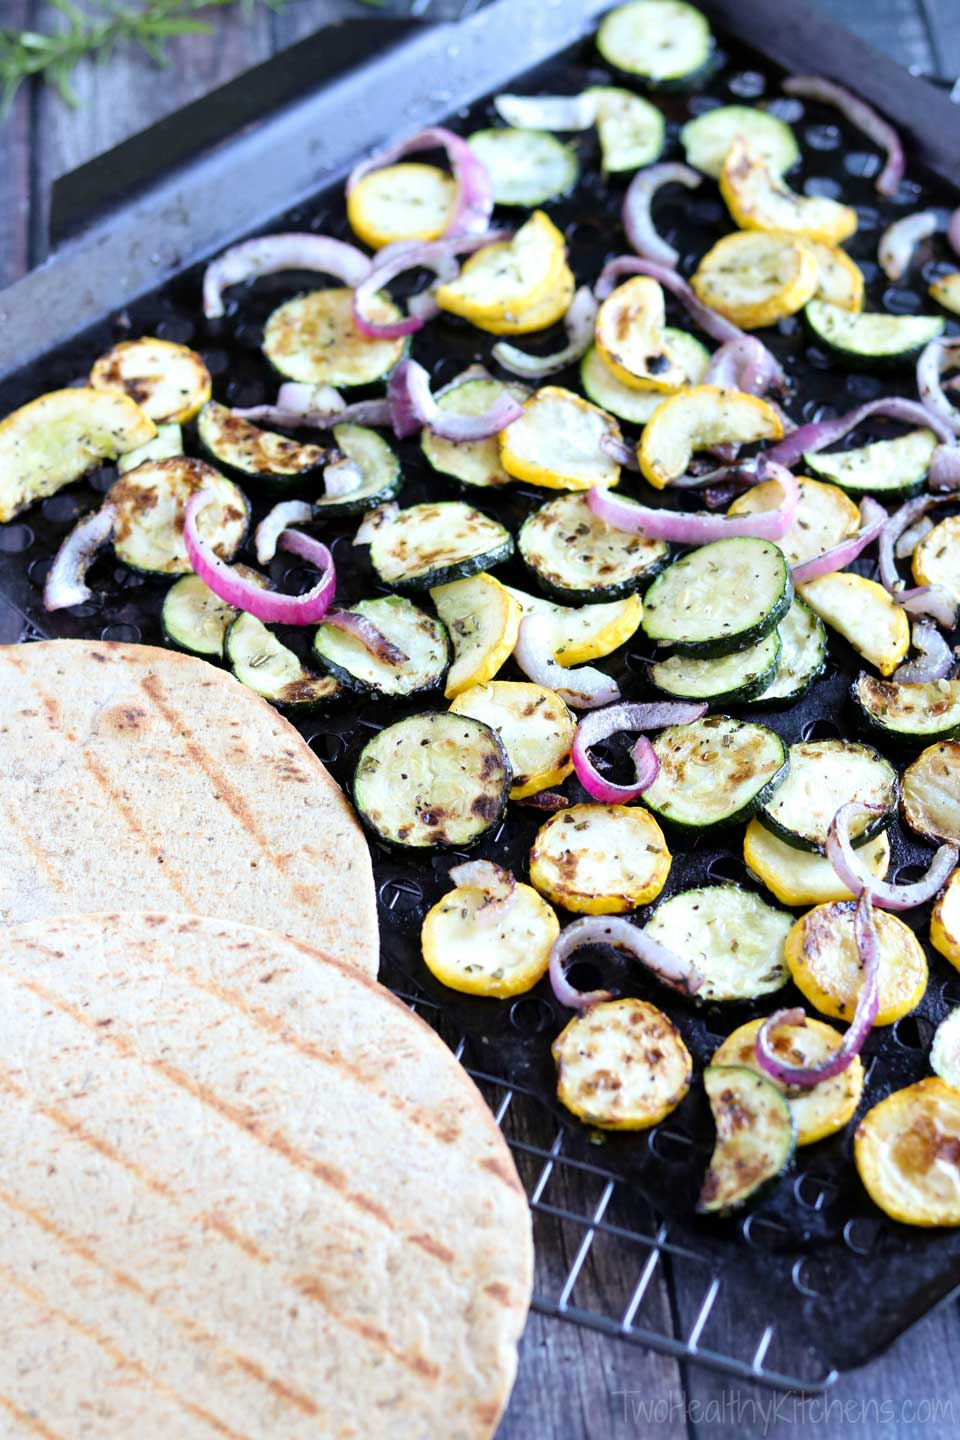 Grilled Zucchini Flatbread Grill Rack And Watermarked These Easy Summer Flatbreads Can